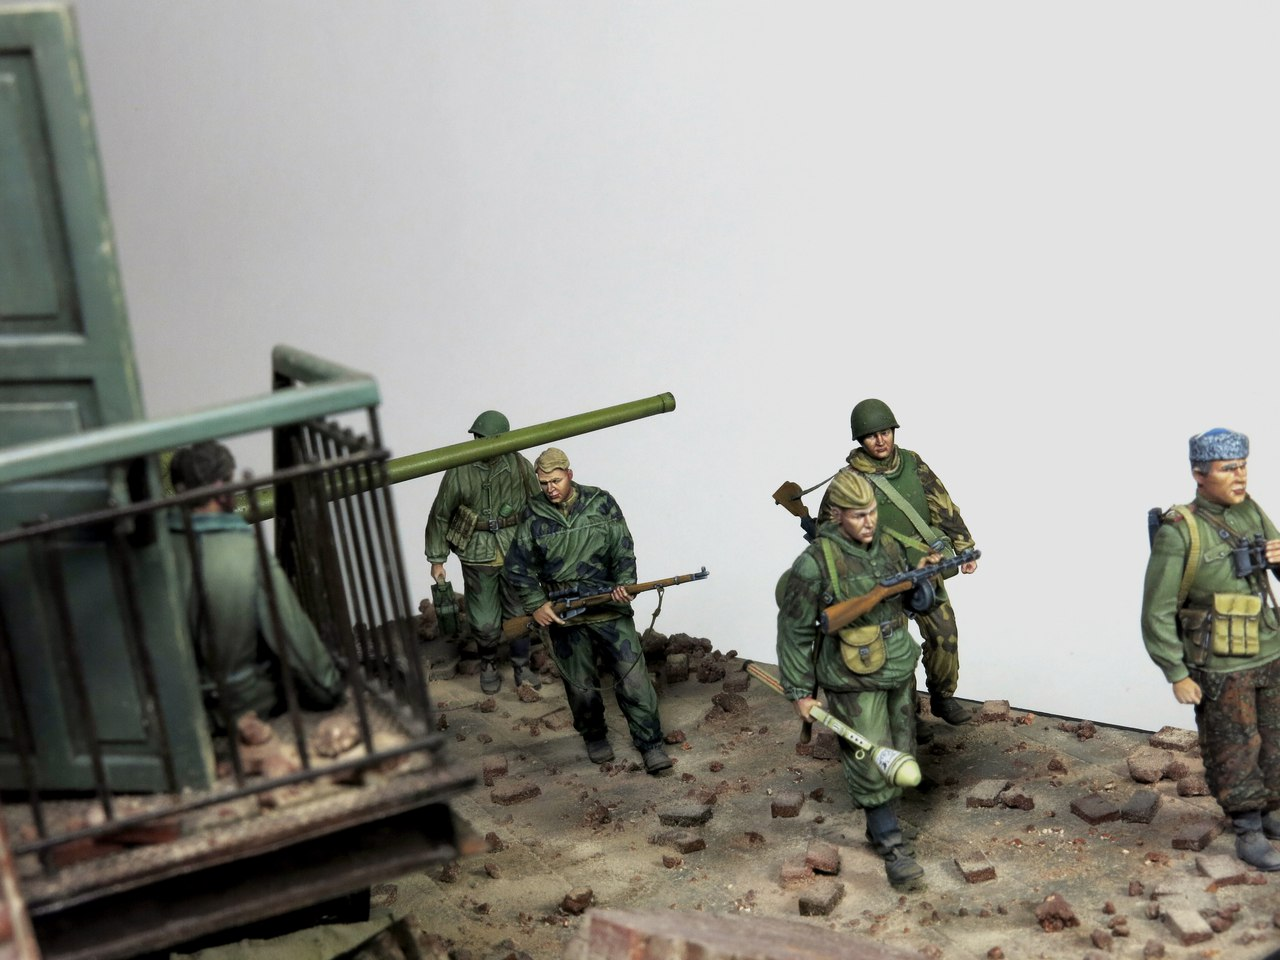 Dioramas and Vignettes: Tragoedia in finem, photo #11